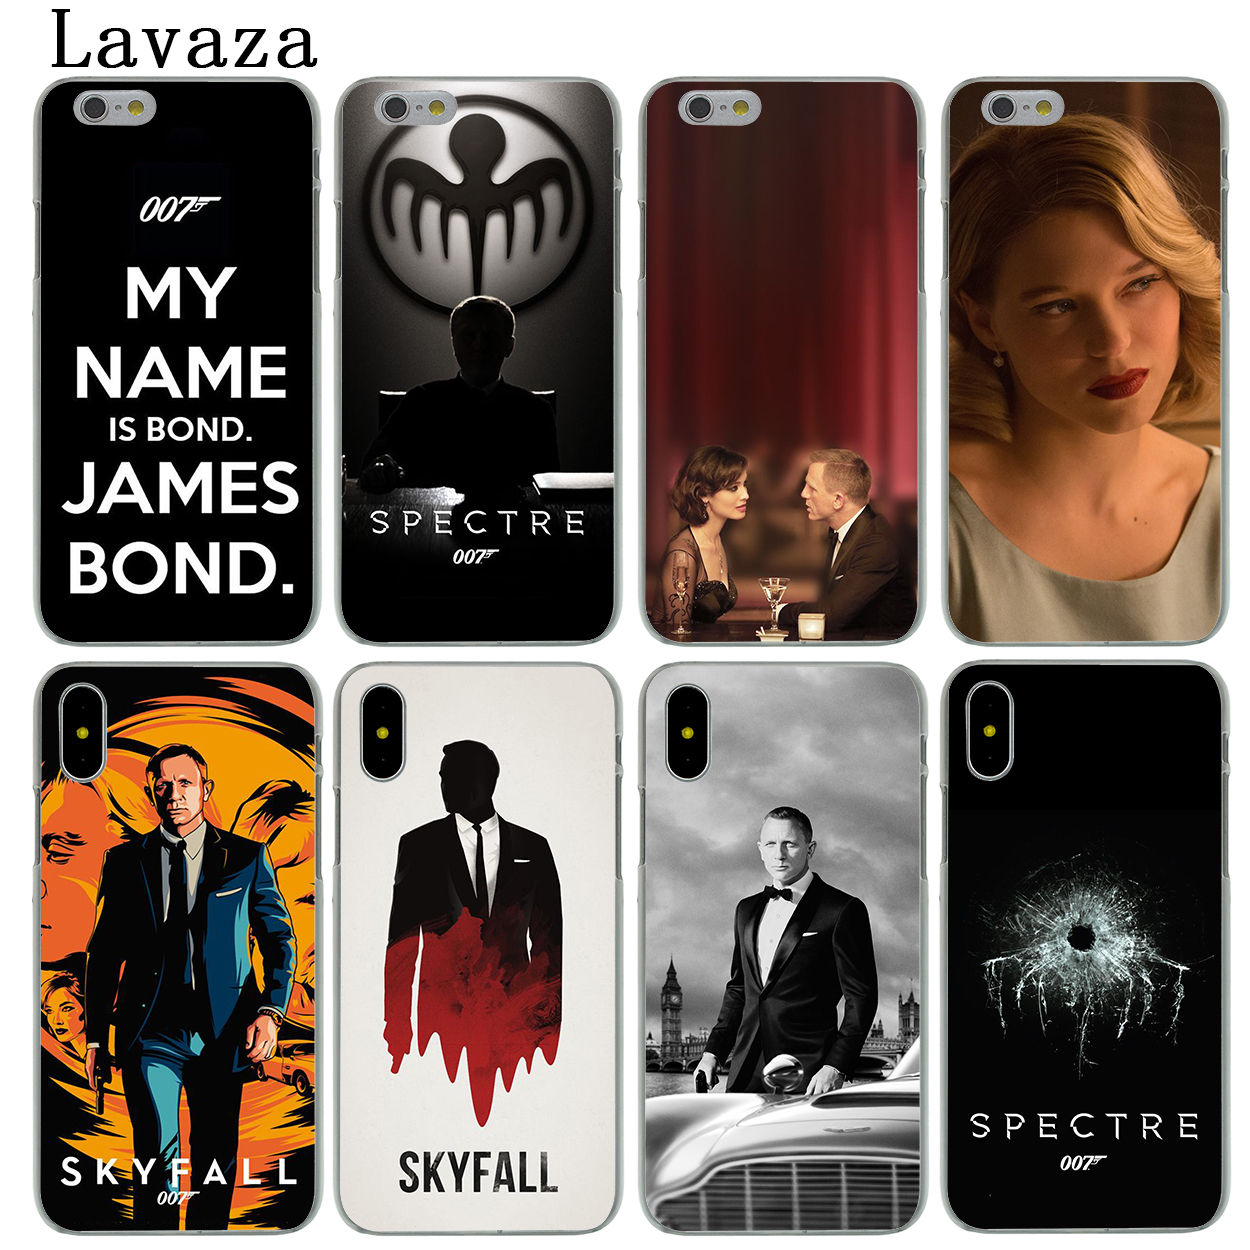 06a22bae3ab Lavaza 007 Spectre James Bond Skyfall Hard Phone Case for Apple iPhone X XS  Max XR 6 6S 7 8 Plus 5 5S SE 5C 4S 10 Cover Cases-in Half-wrapped Case from  ...